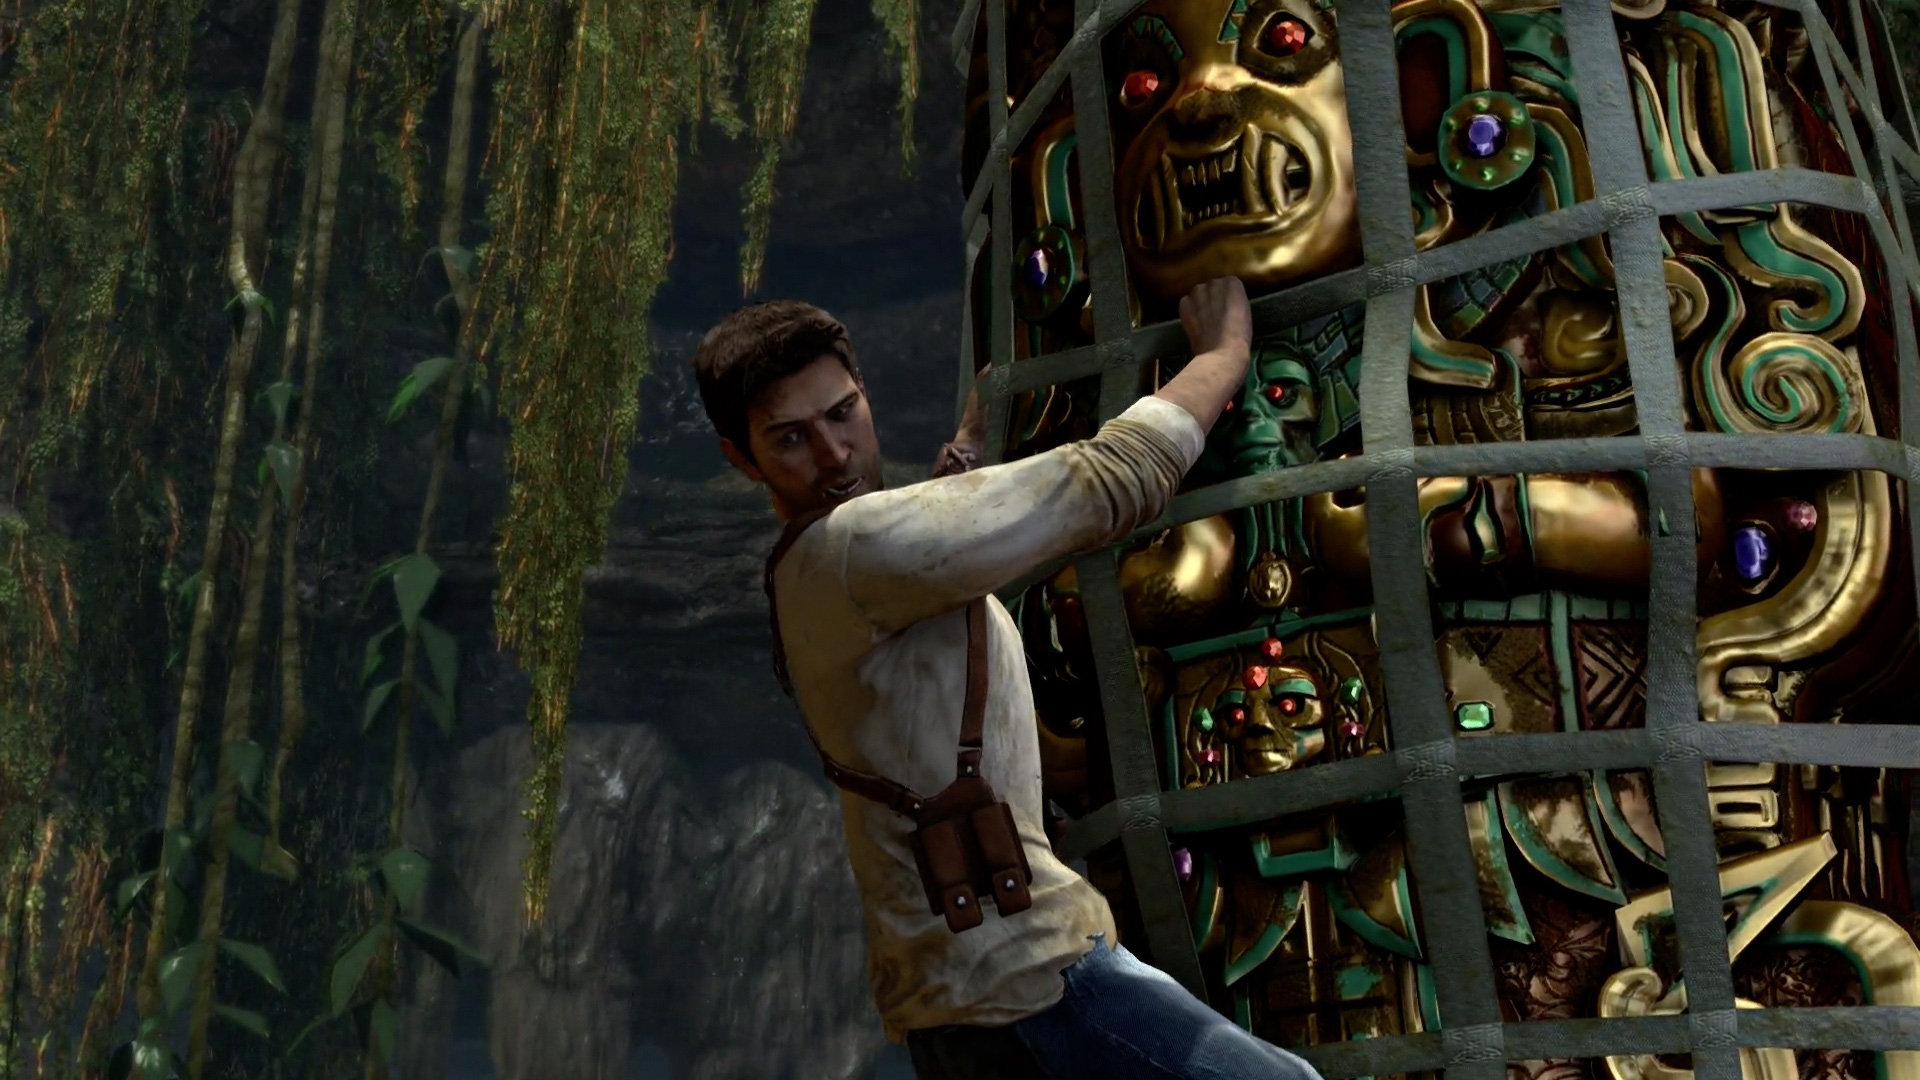 uncharted-drakes-fortune-remastered-screen-08-ps4-eu-28sep16.jpg